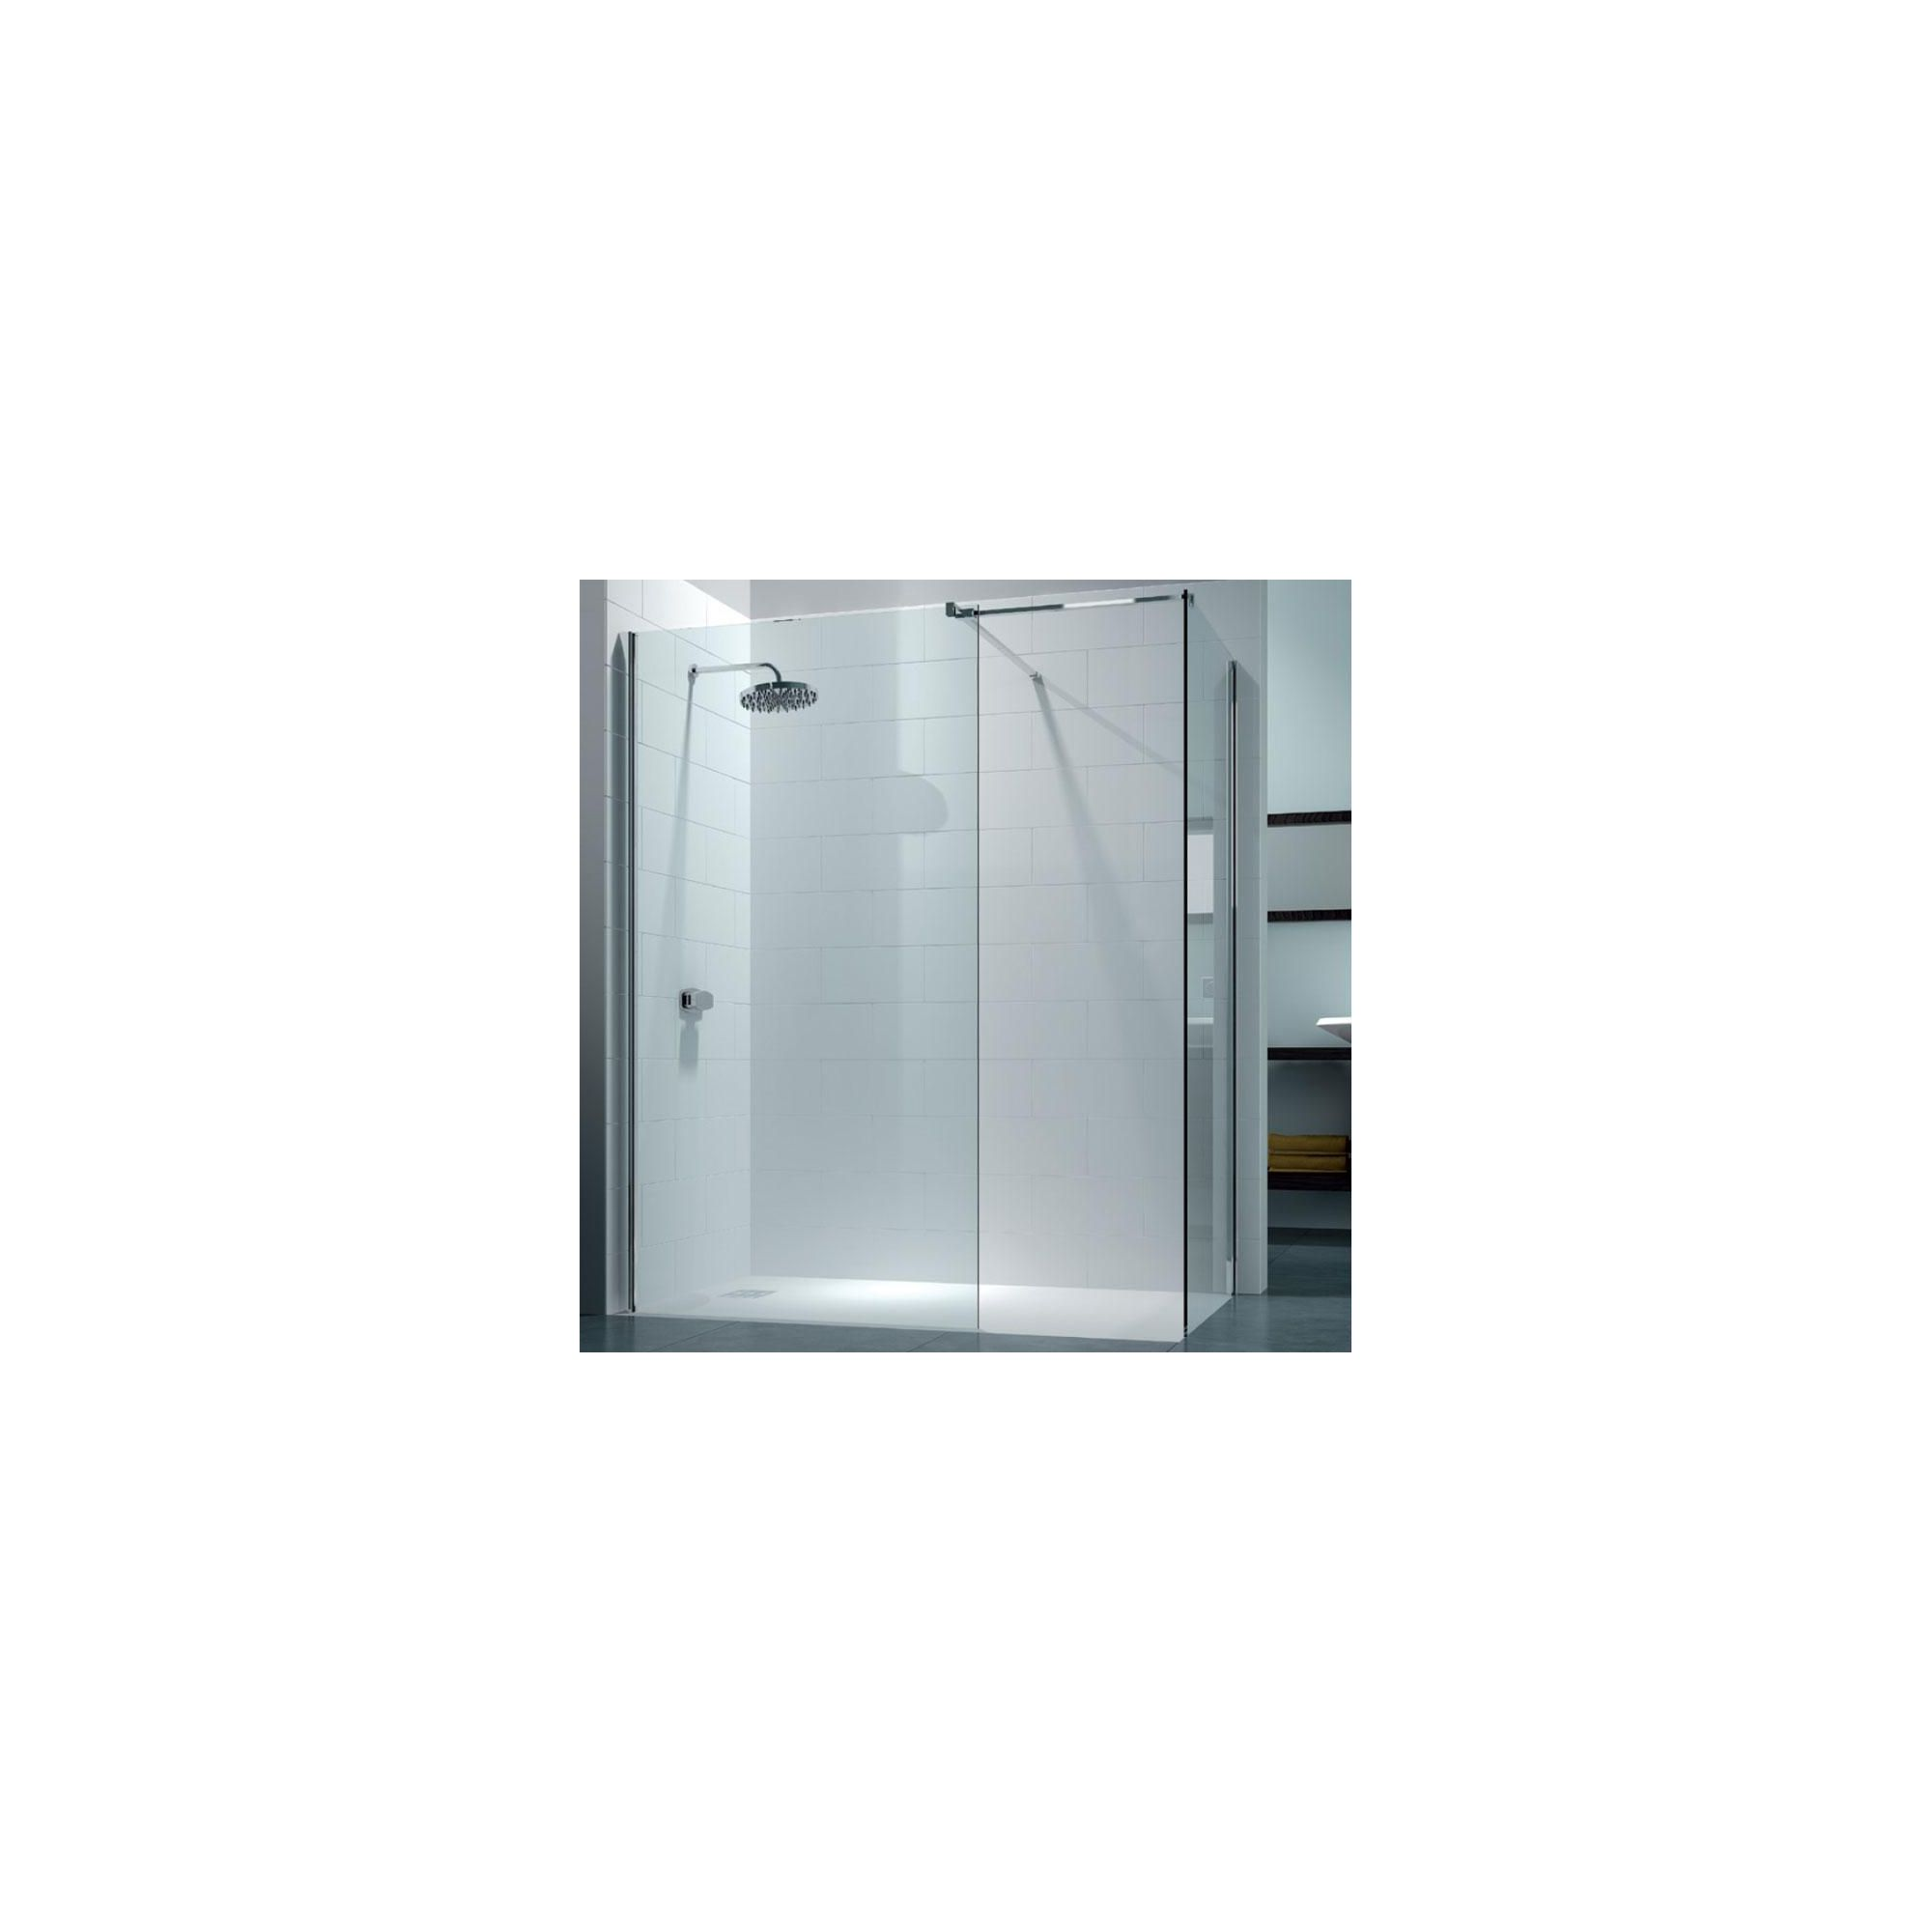 Merlyn Series 8 Walk-In Shower Enclosure, 1400mm x 800mm, 8mm Glass, excluding Tray at Tesco Direct